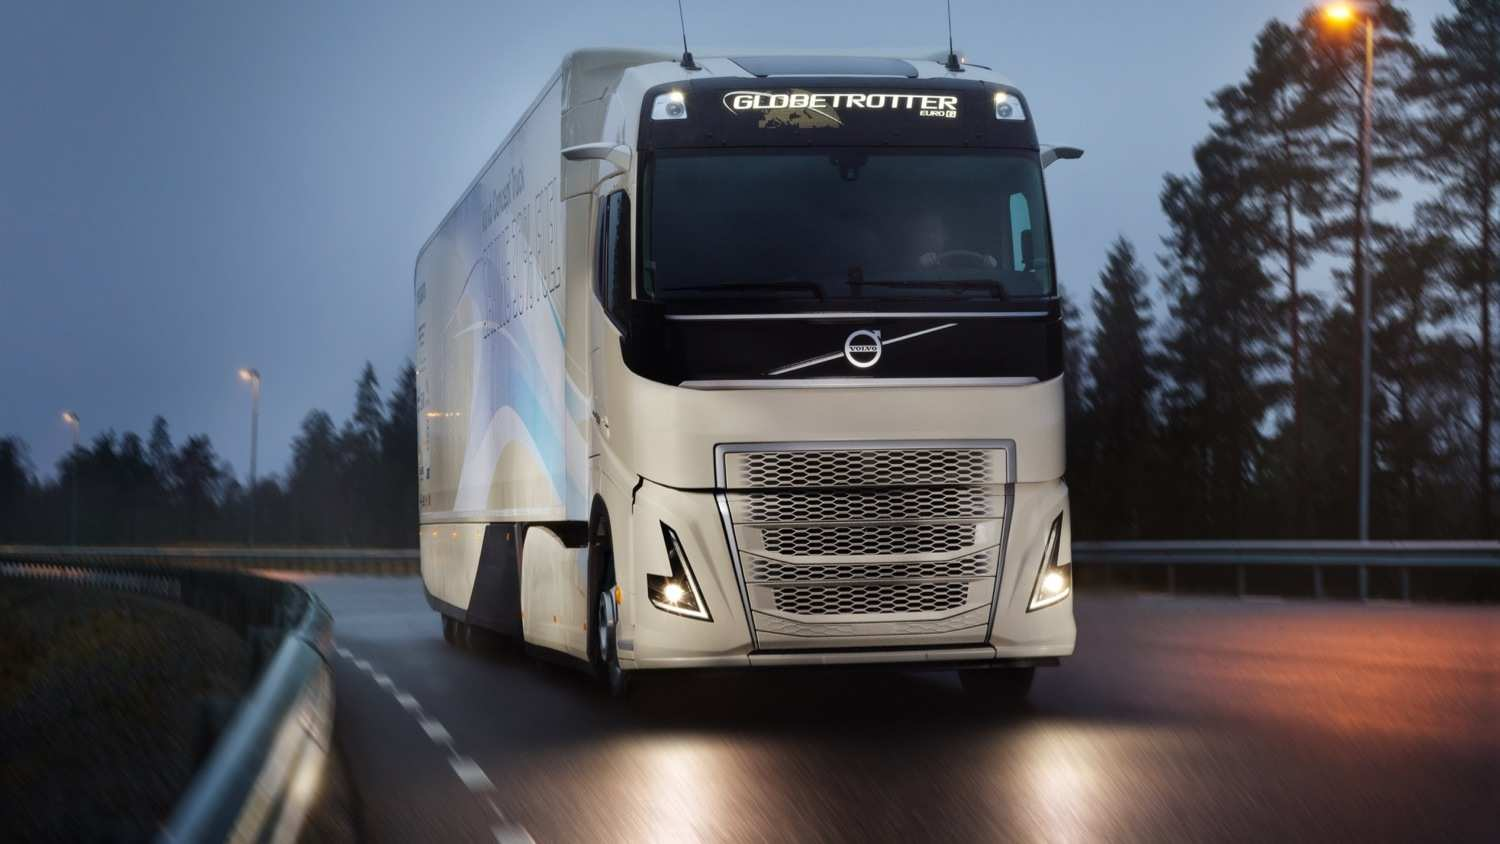 74 Gallery of Volvo Globetrotter 2020 Exterior and Interior with Volvo Globetrotter 2020